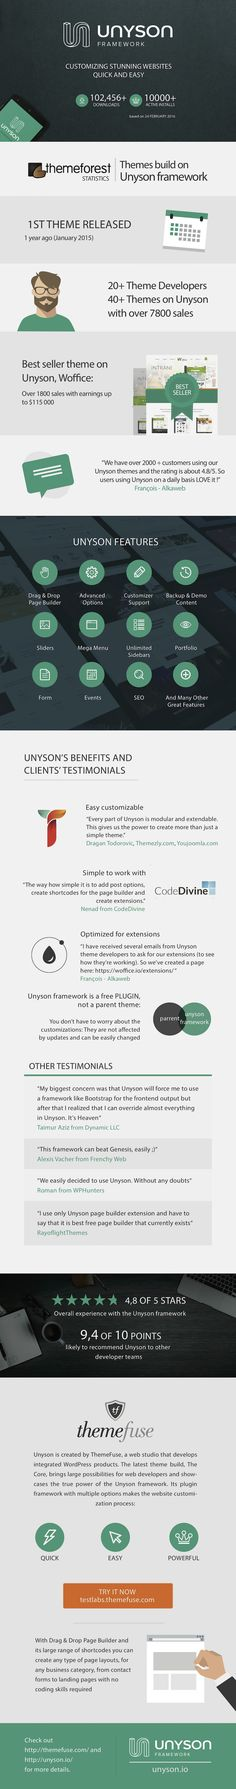 Infographic Unyson  The Best WordPress Framework for Developers  // #Wordpress #Dev #Frameworks